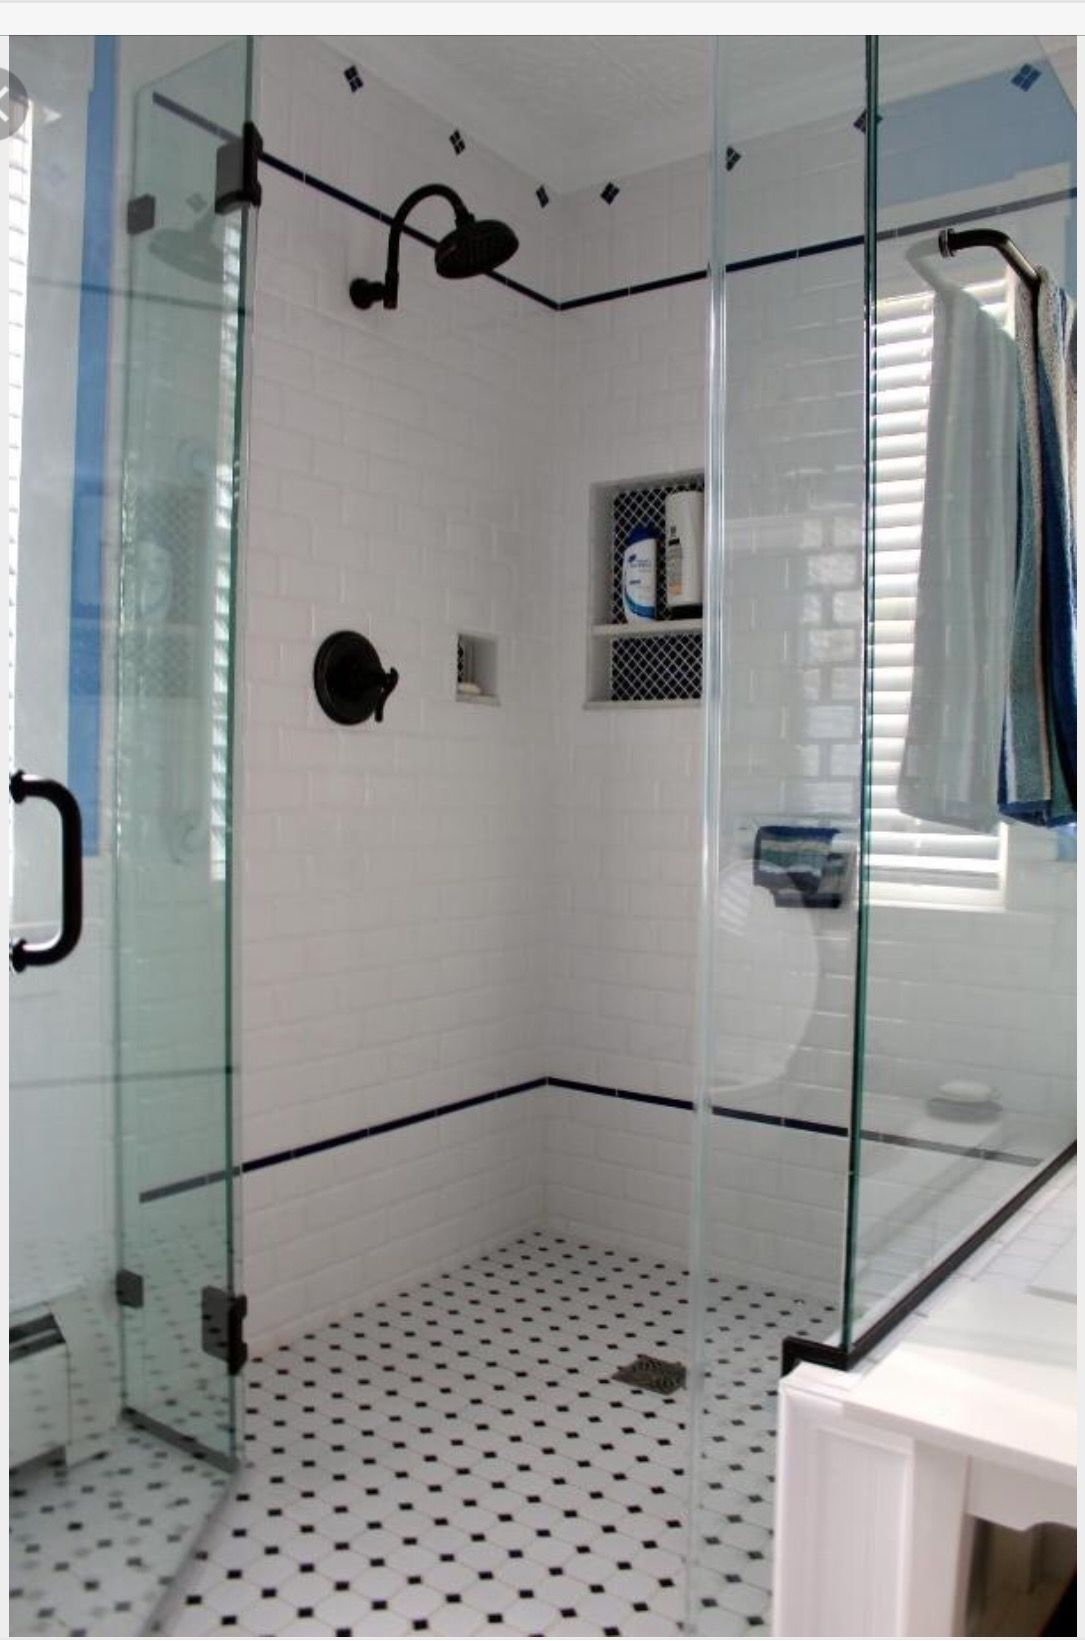 Double Liner Tile Black And White Tiles Bathroom White Bathroom Tiles Classic Bathroom Tile